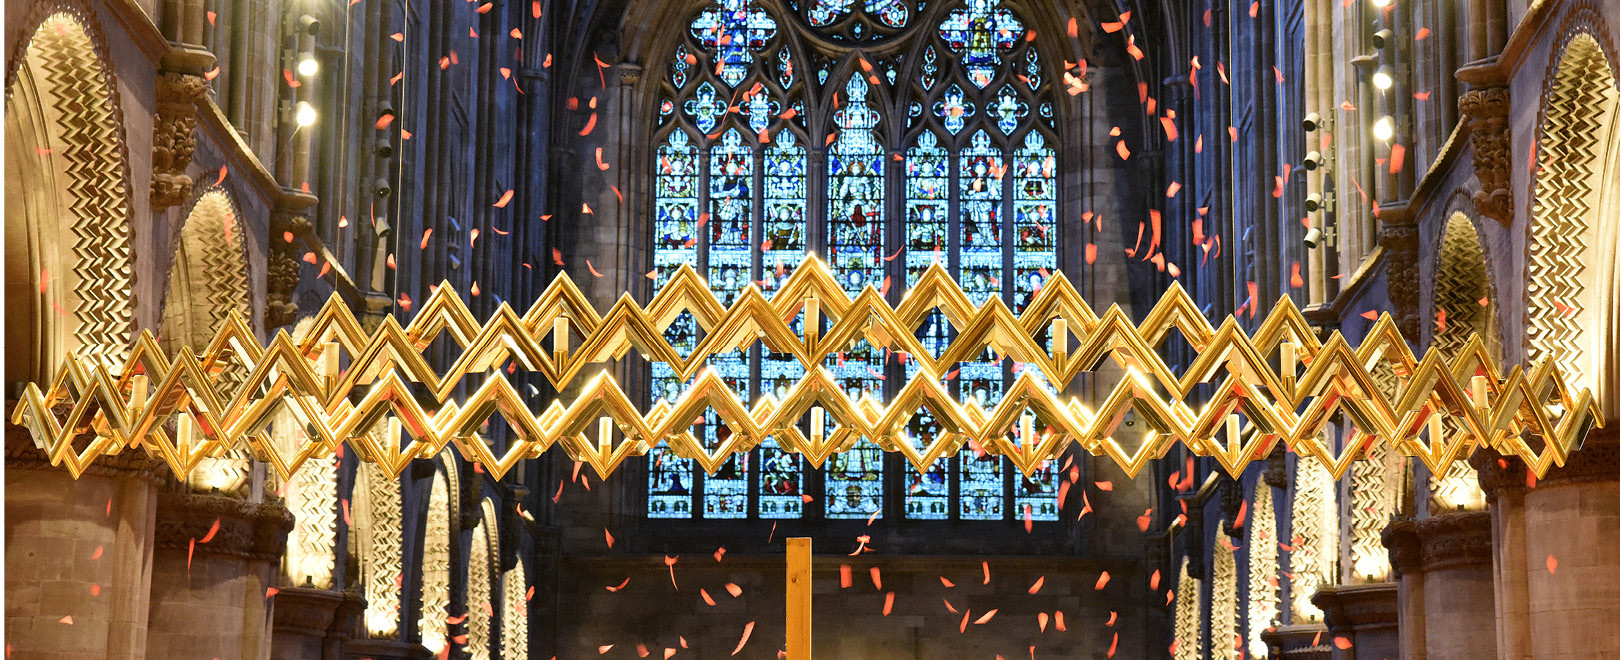 Remembrance at Hereford Cathedral